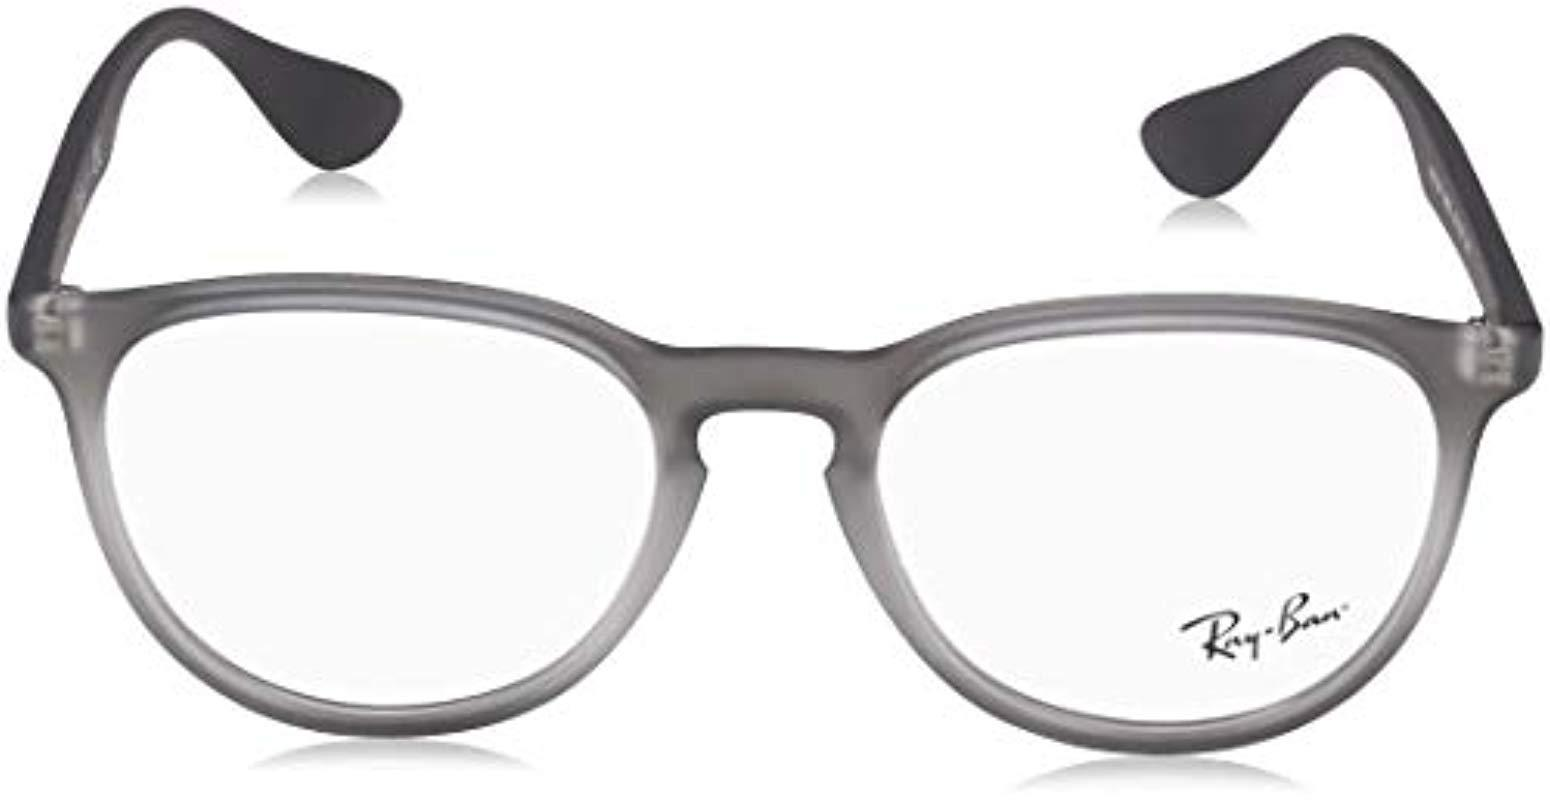 Ray-Ban Rayban 7046 in Gray for Men - Save 1.4492753623188435% - Lyst 06c99145eb93